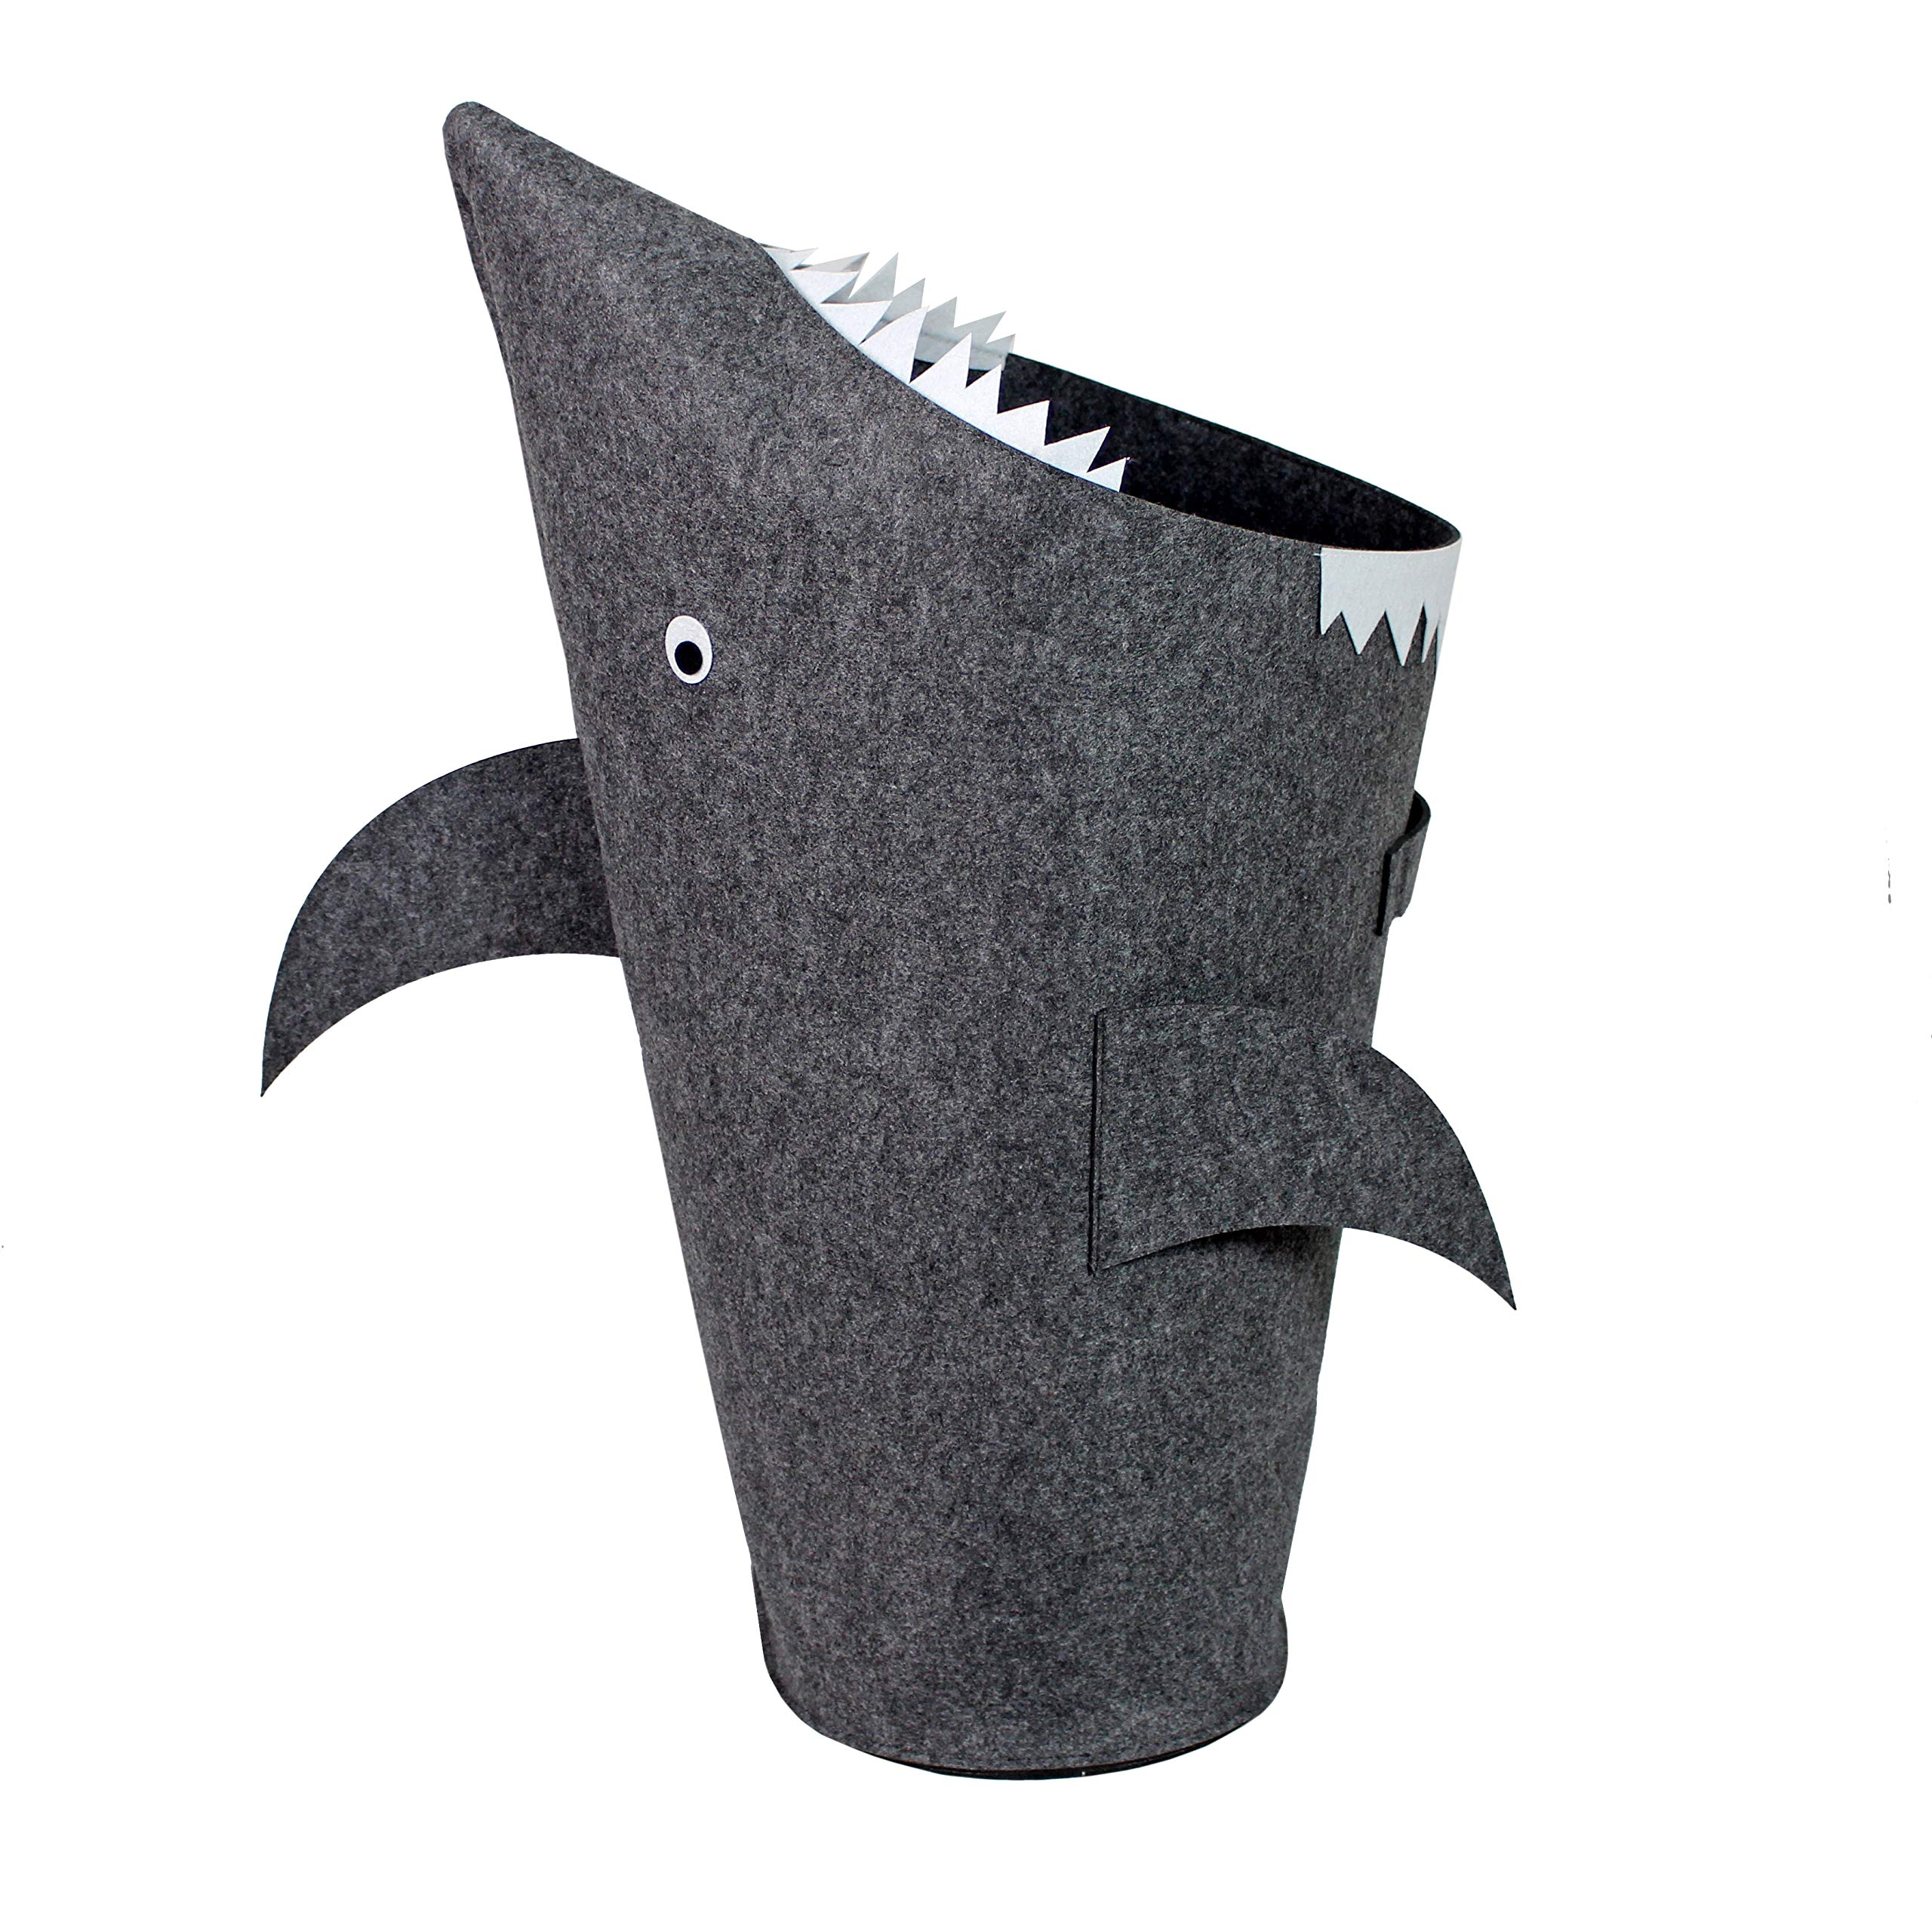 Shark kid laundry hamper